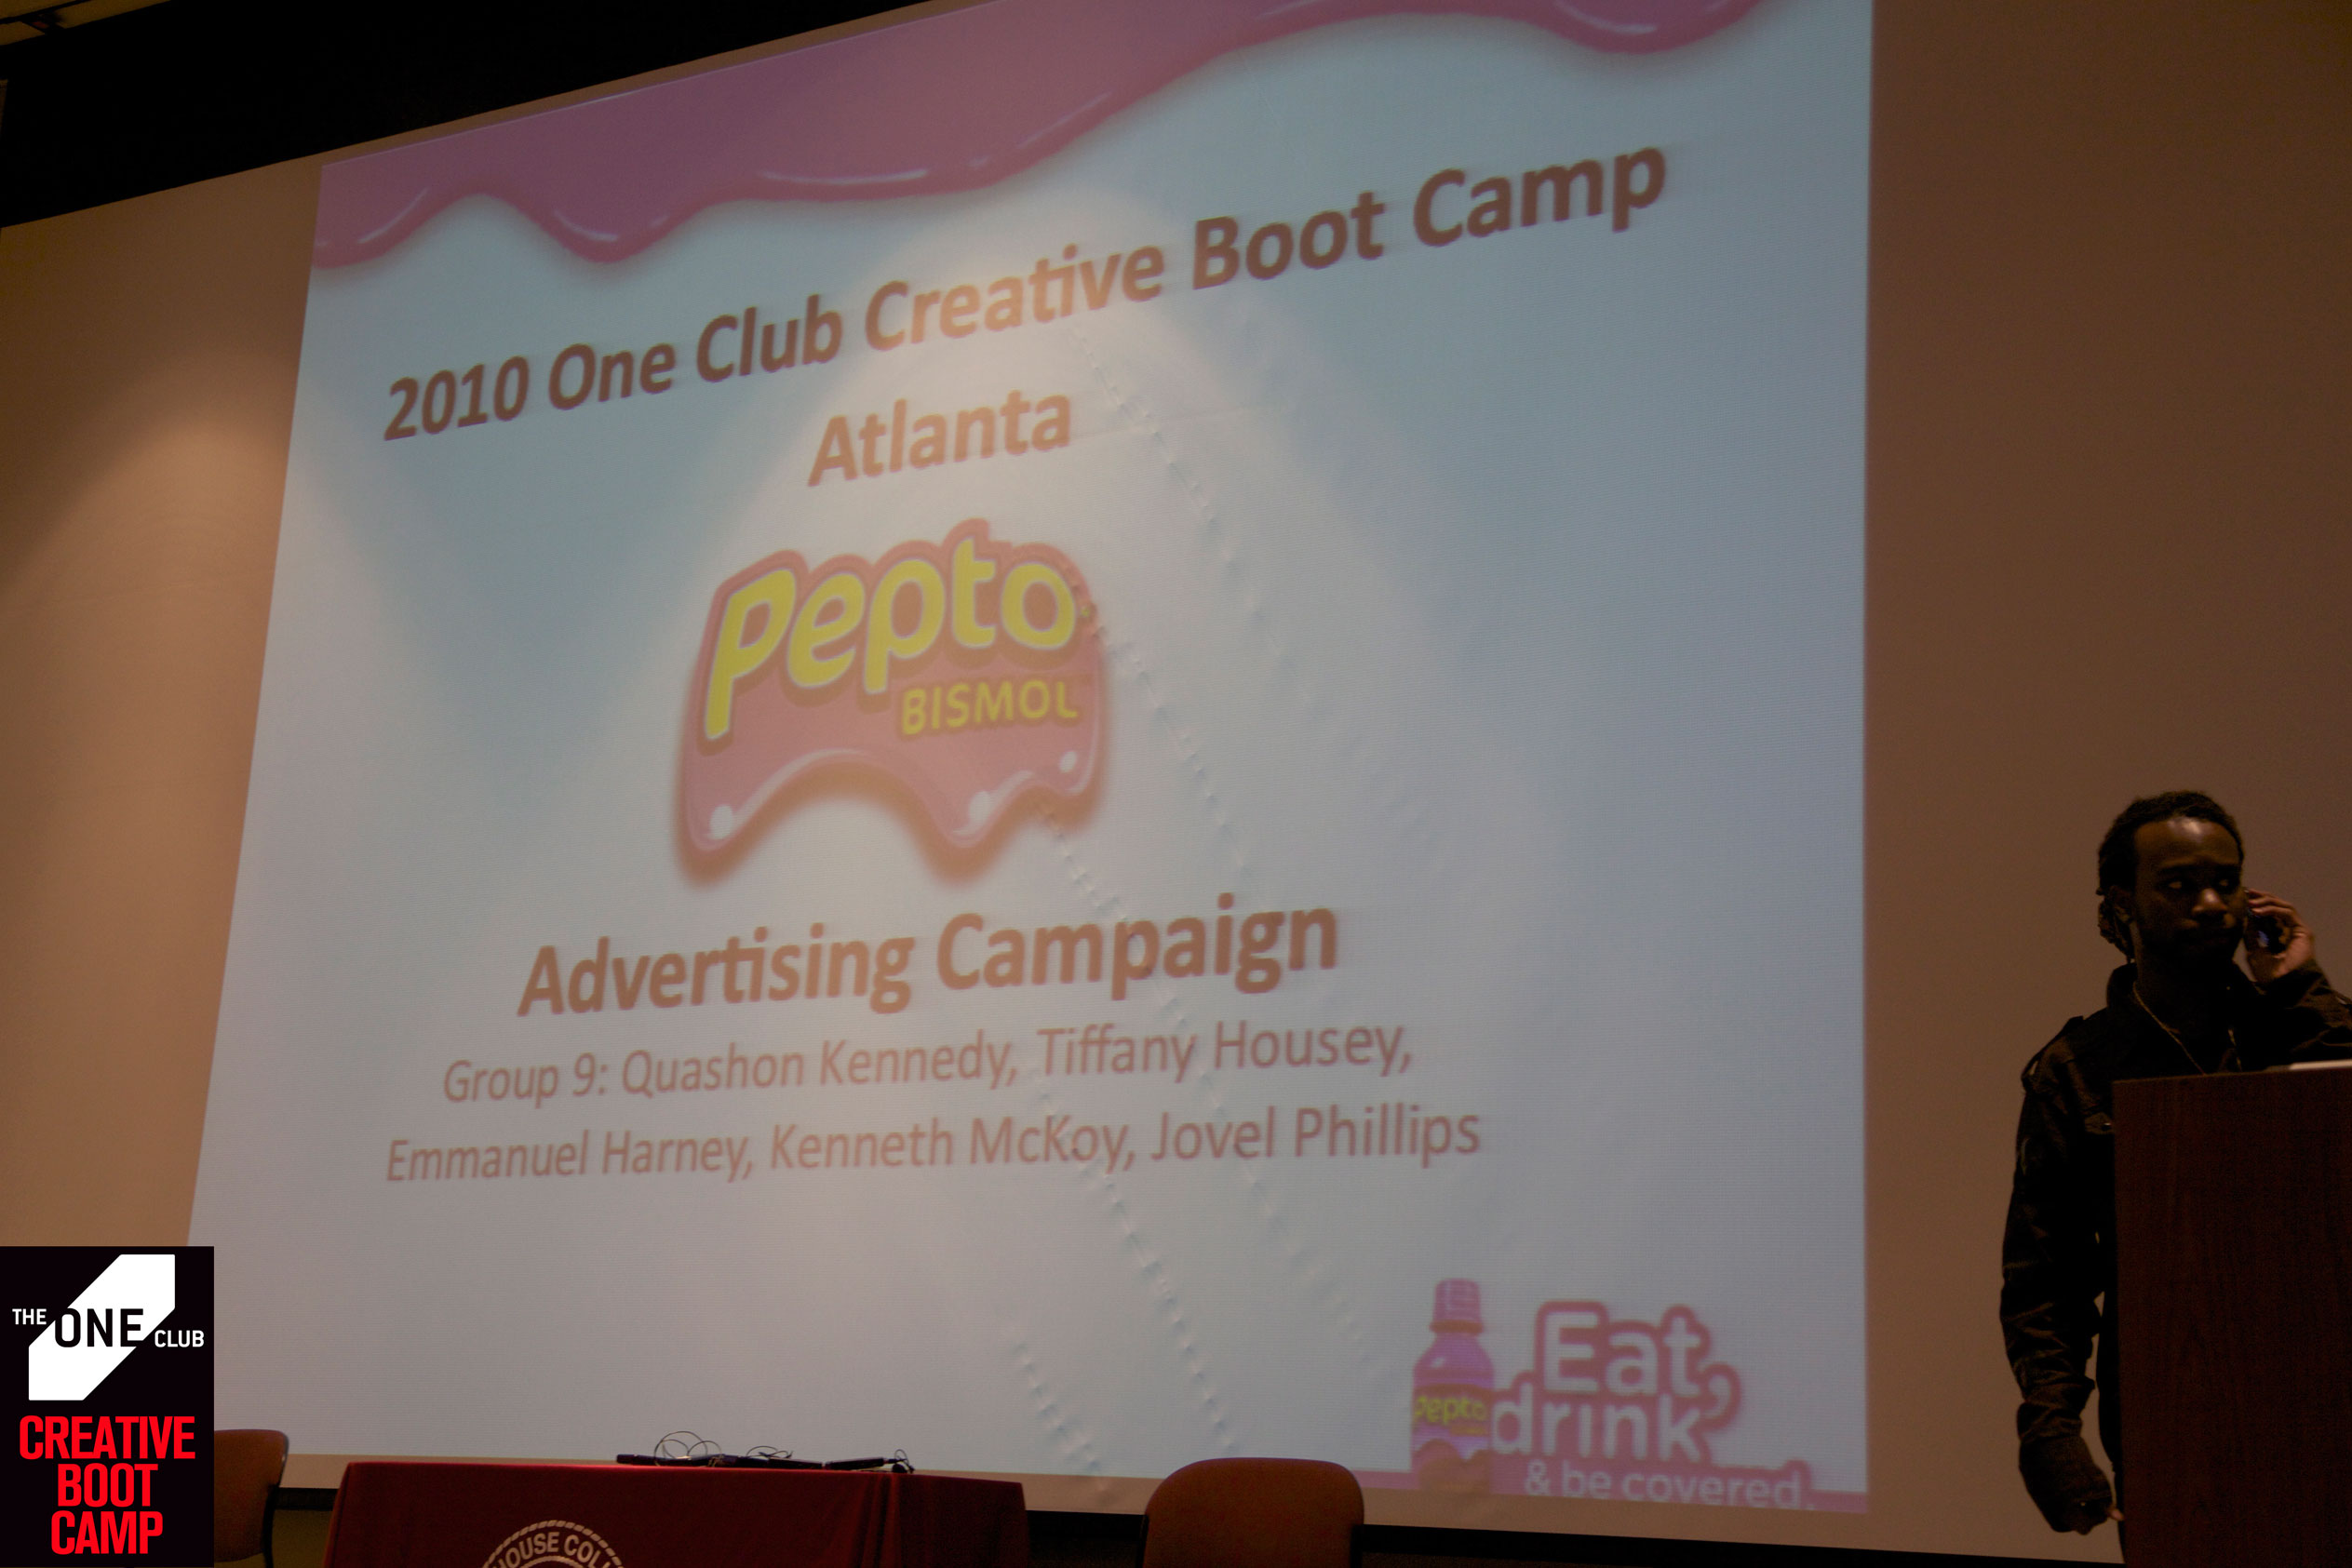 2010 Atlanta Creative Boot Camp